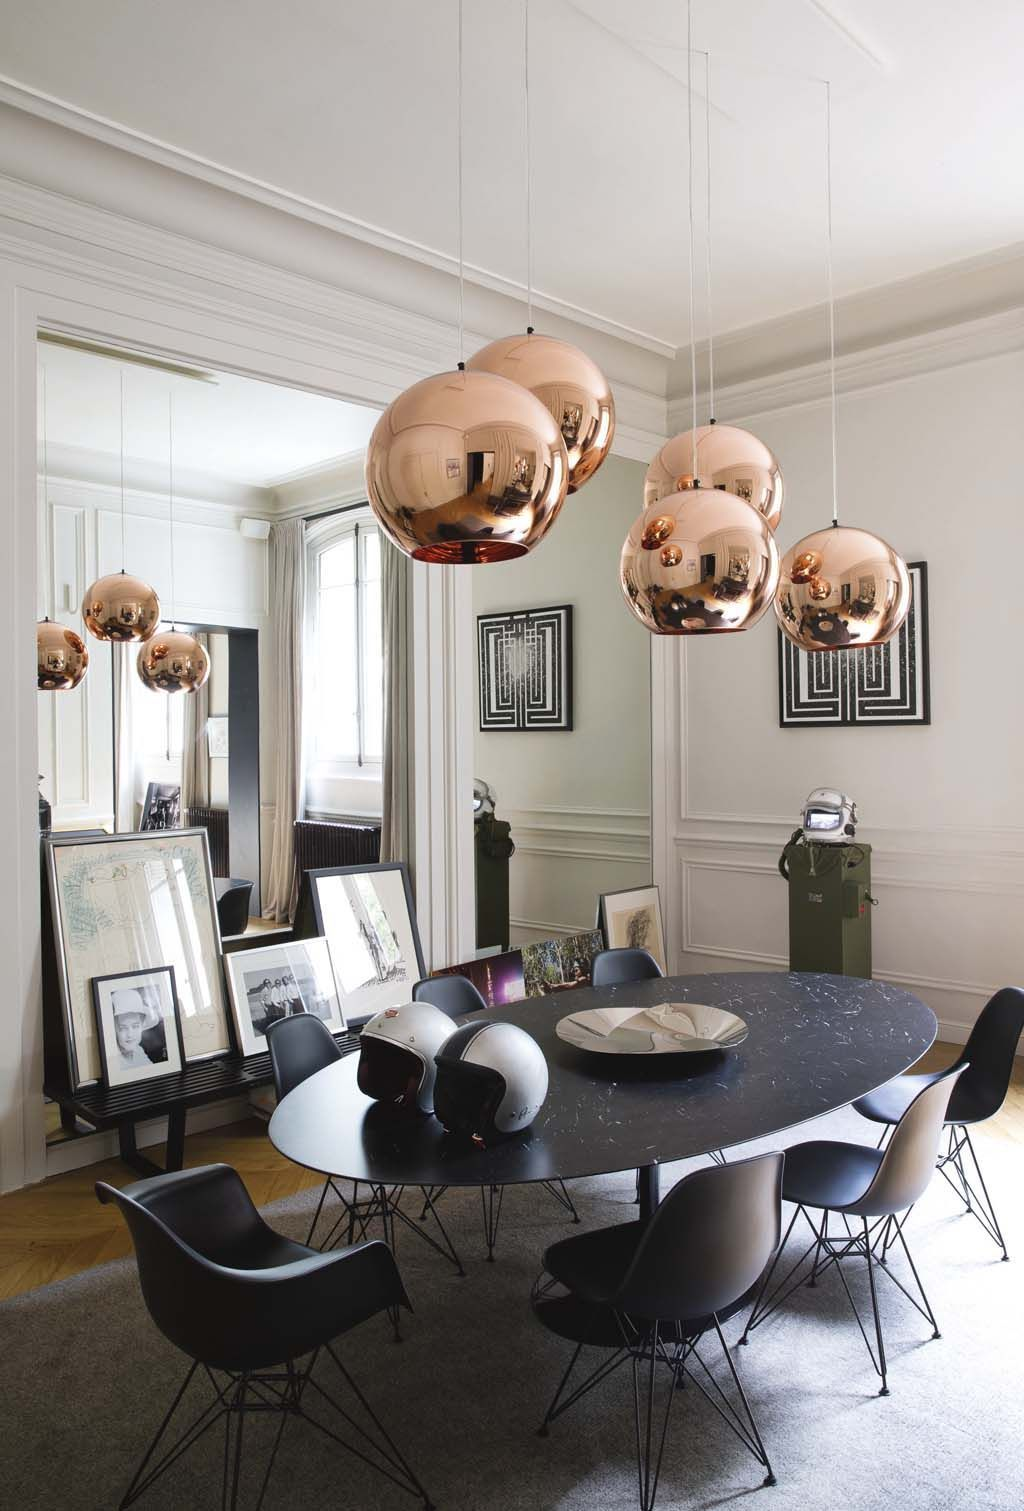 Sophisticated Dining Room Ideas For Your Home Design dining room ideas Sophisticated Dining Room Ideas For Your Home Design dessine au trait 8 4856457